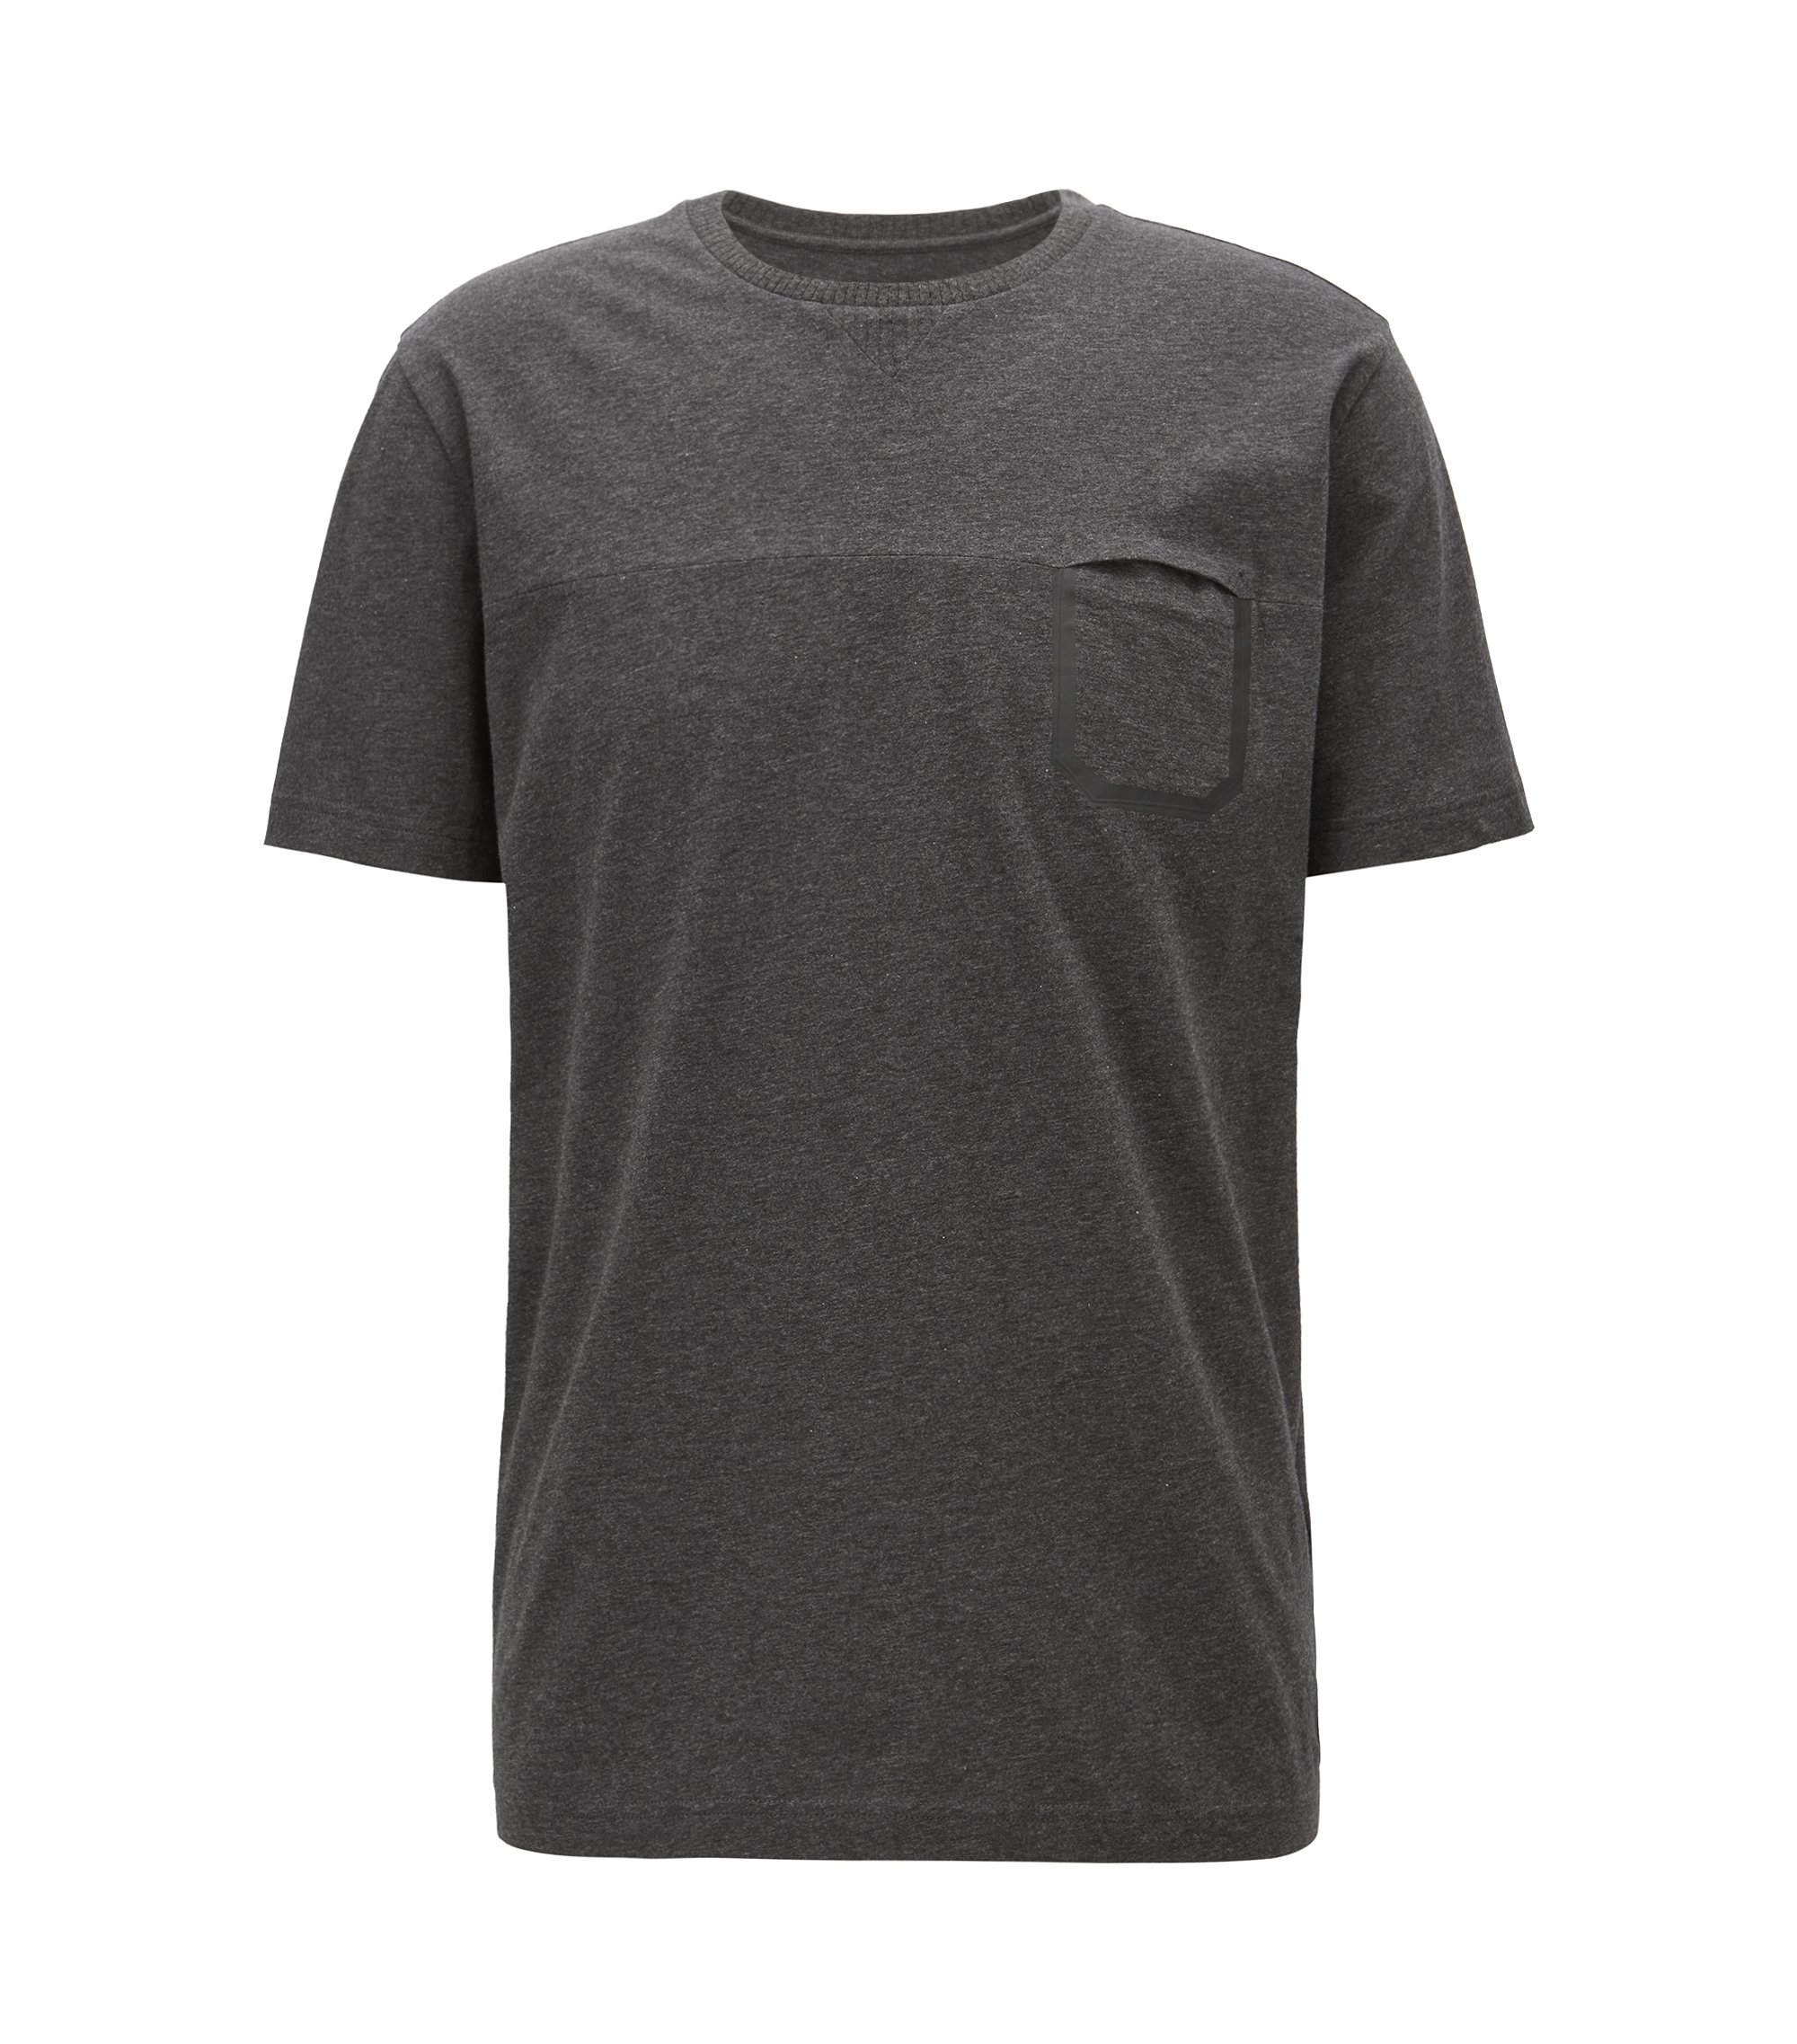 Melange cotton T-shirt with pocket detail, Black